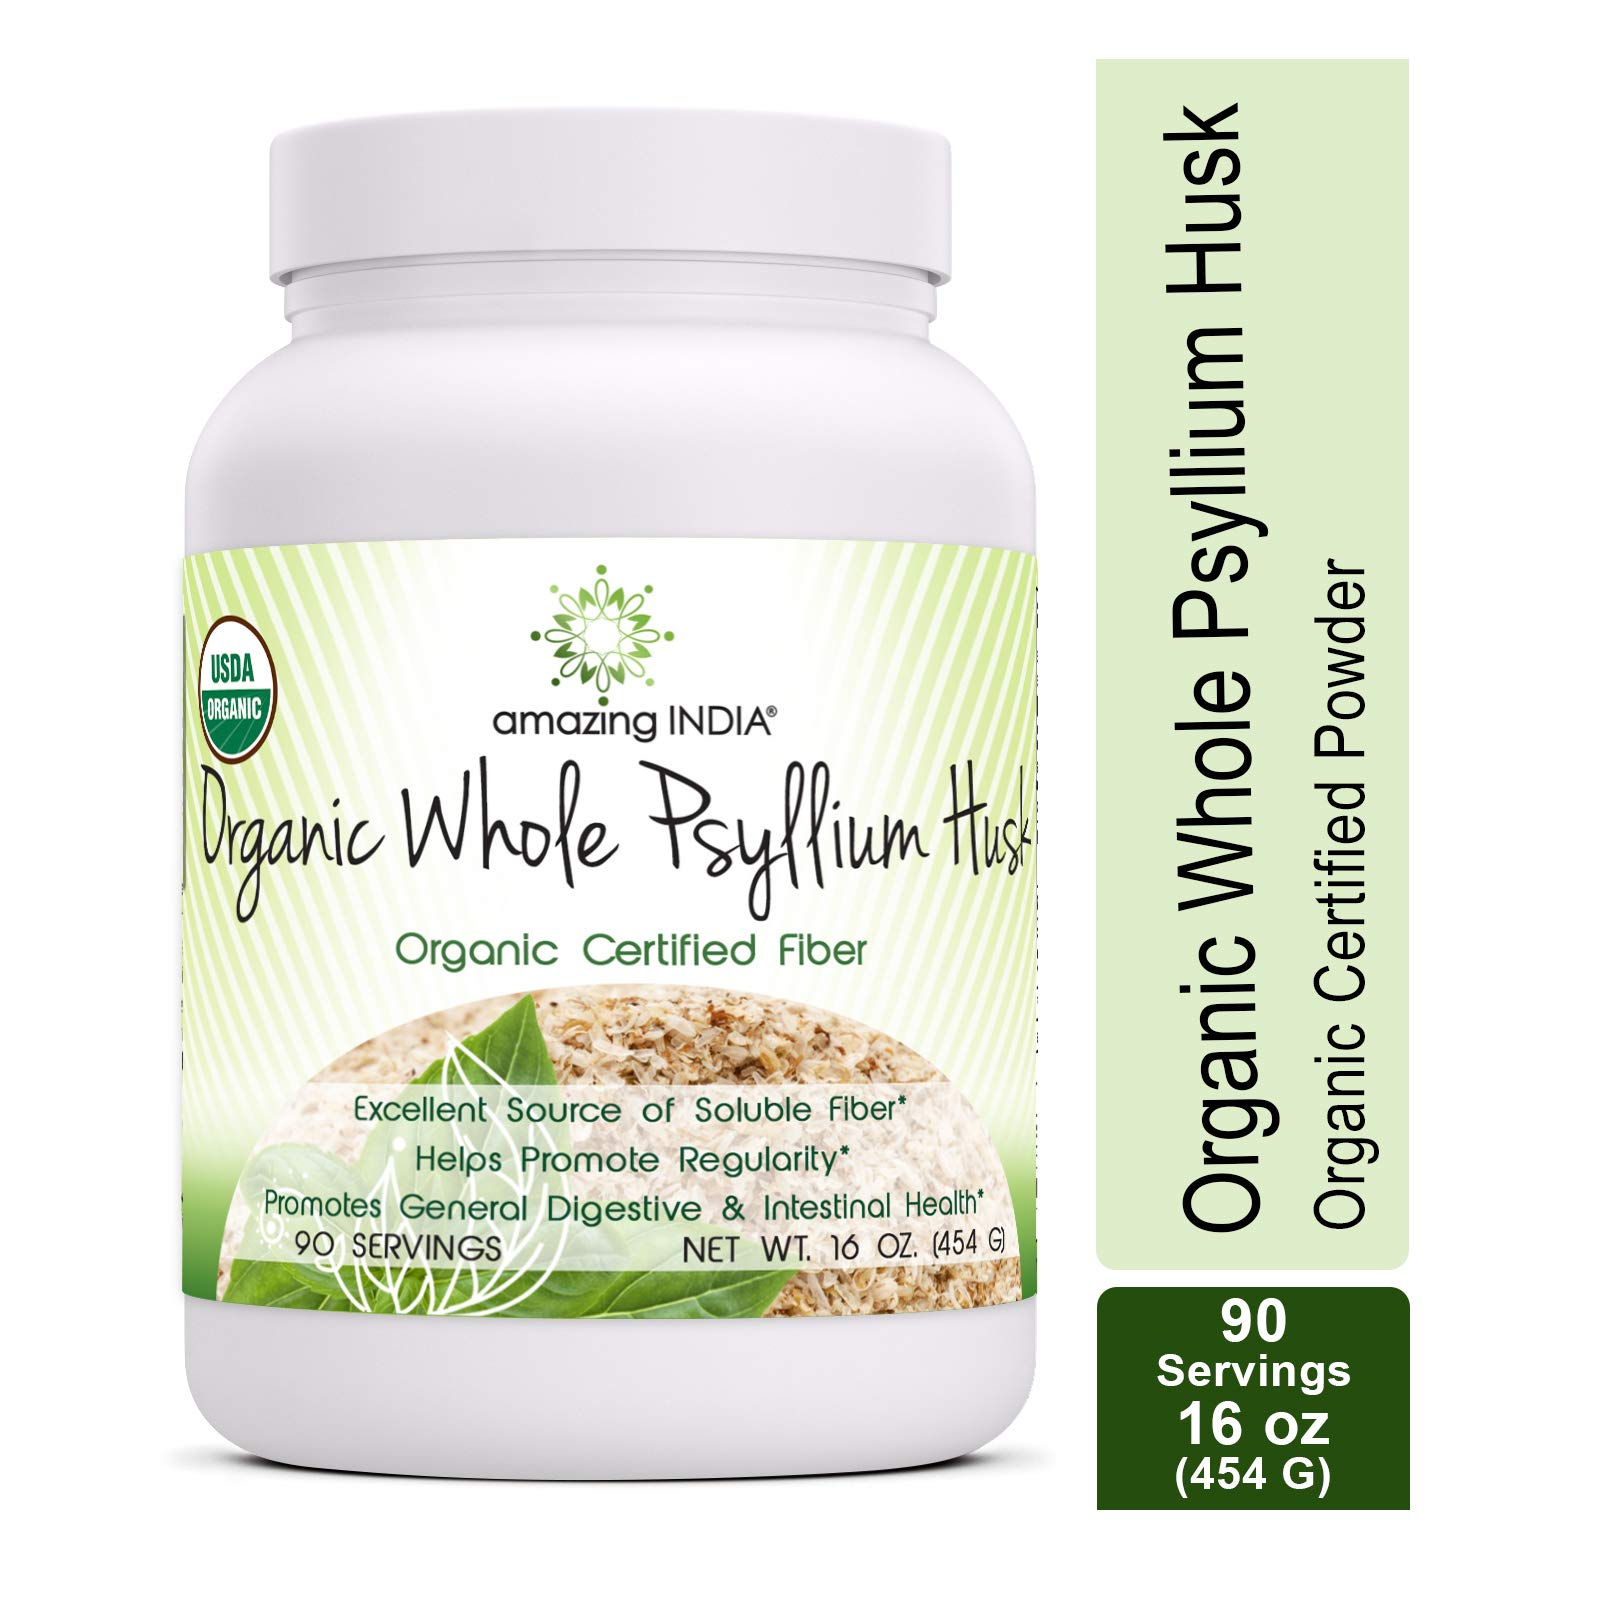 Amazing India USDA Certified Organic Whole Husk Psyllium - 16 Oz Powder (Non-GMO) - Excellent Source of Soluble Fiber - Helps Promote Regularity - Promotes General Digestive & Intestinal Health by Amazing India